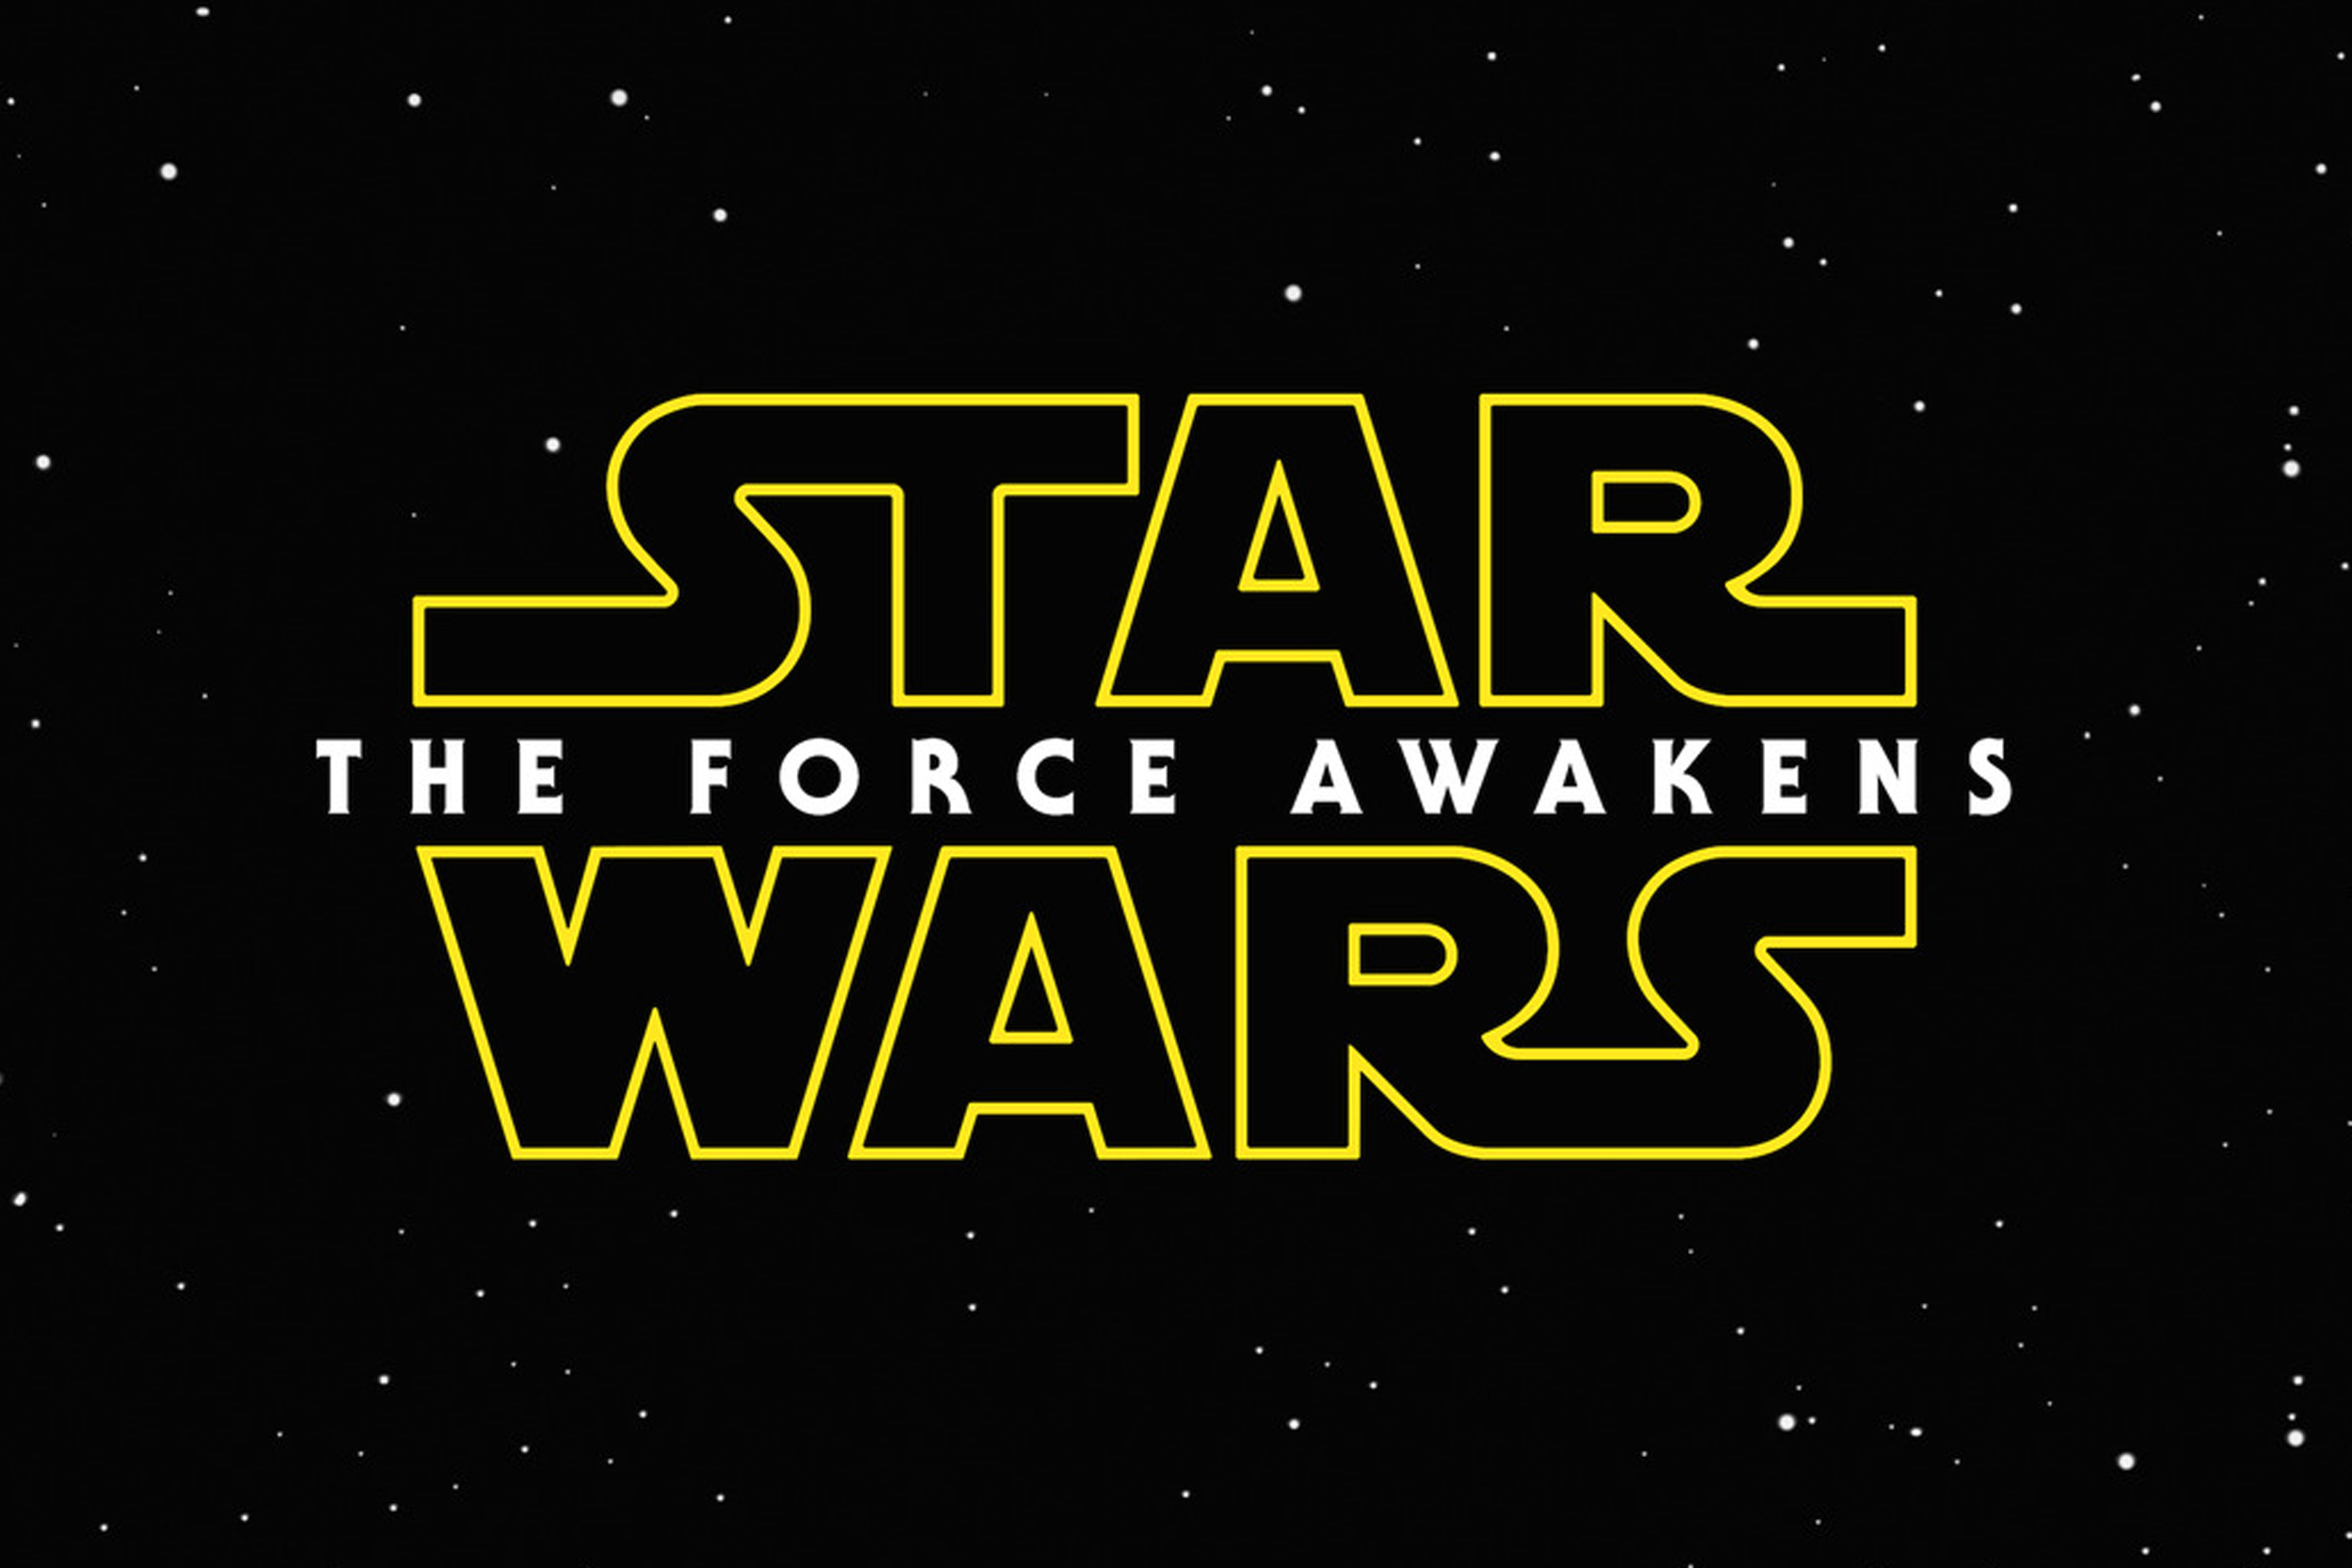 """Star Wars: The Force Awakens"" 메이킹 영.."